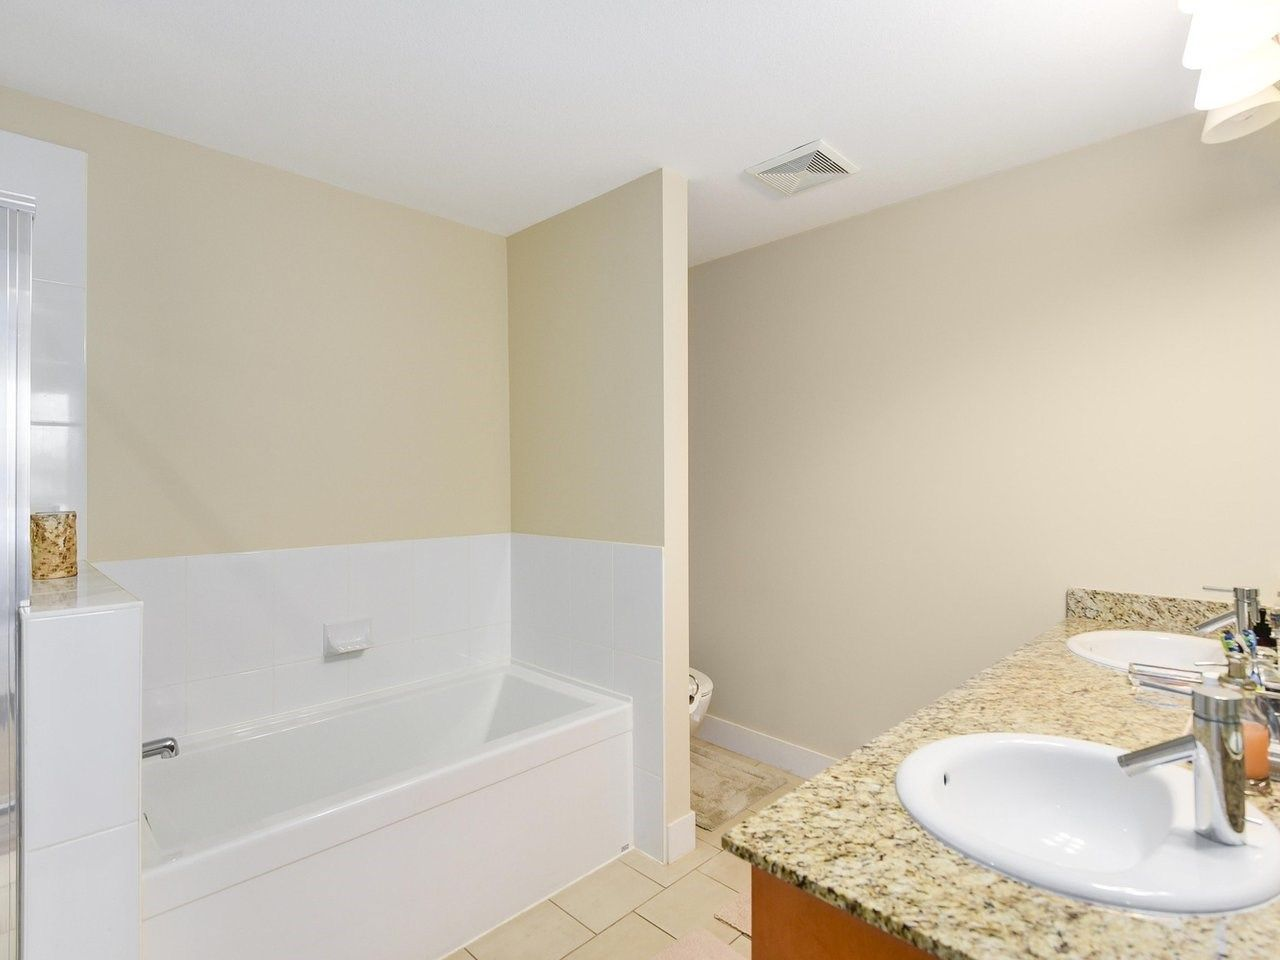 Photo 9: Photos: 106 2601 WHITELEY COURT in North Vancouver: Lynn Valley Condo for sale : MLS®# R2186381